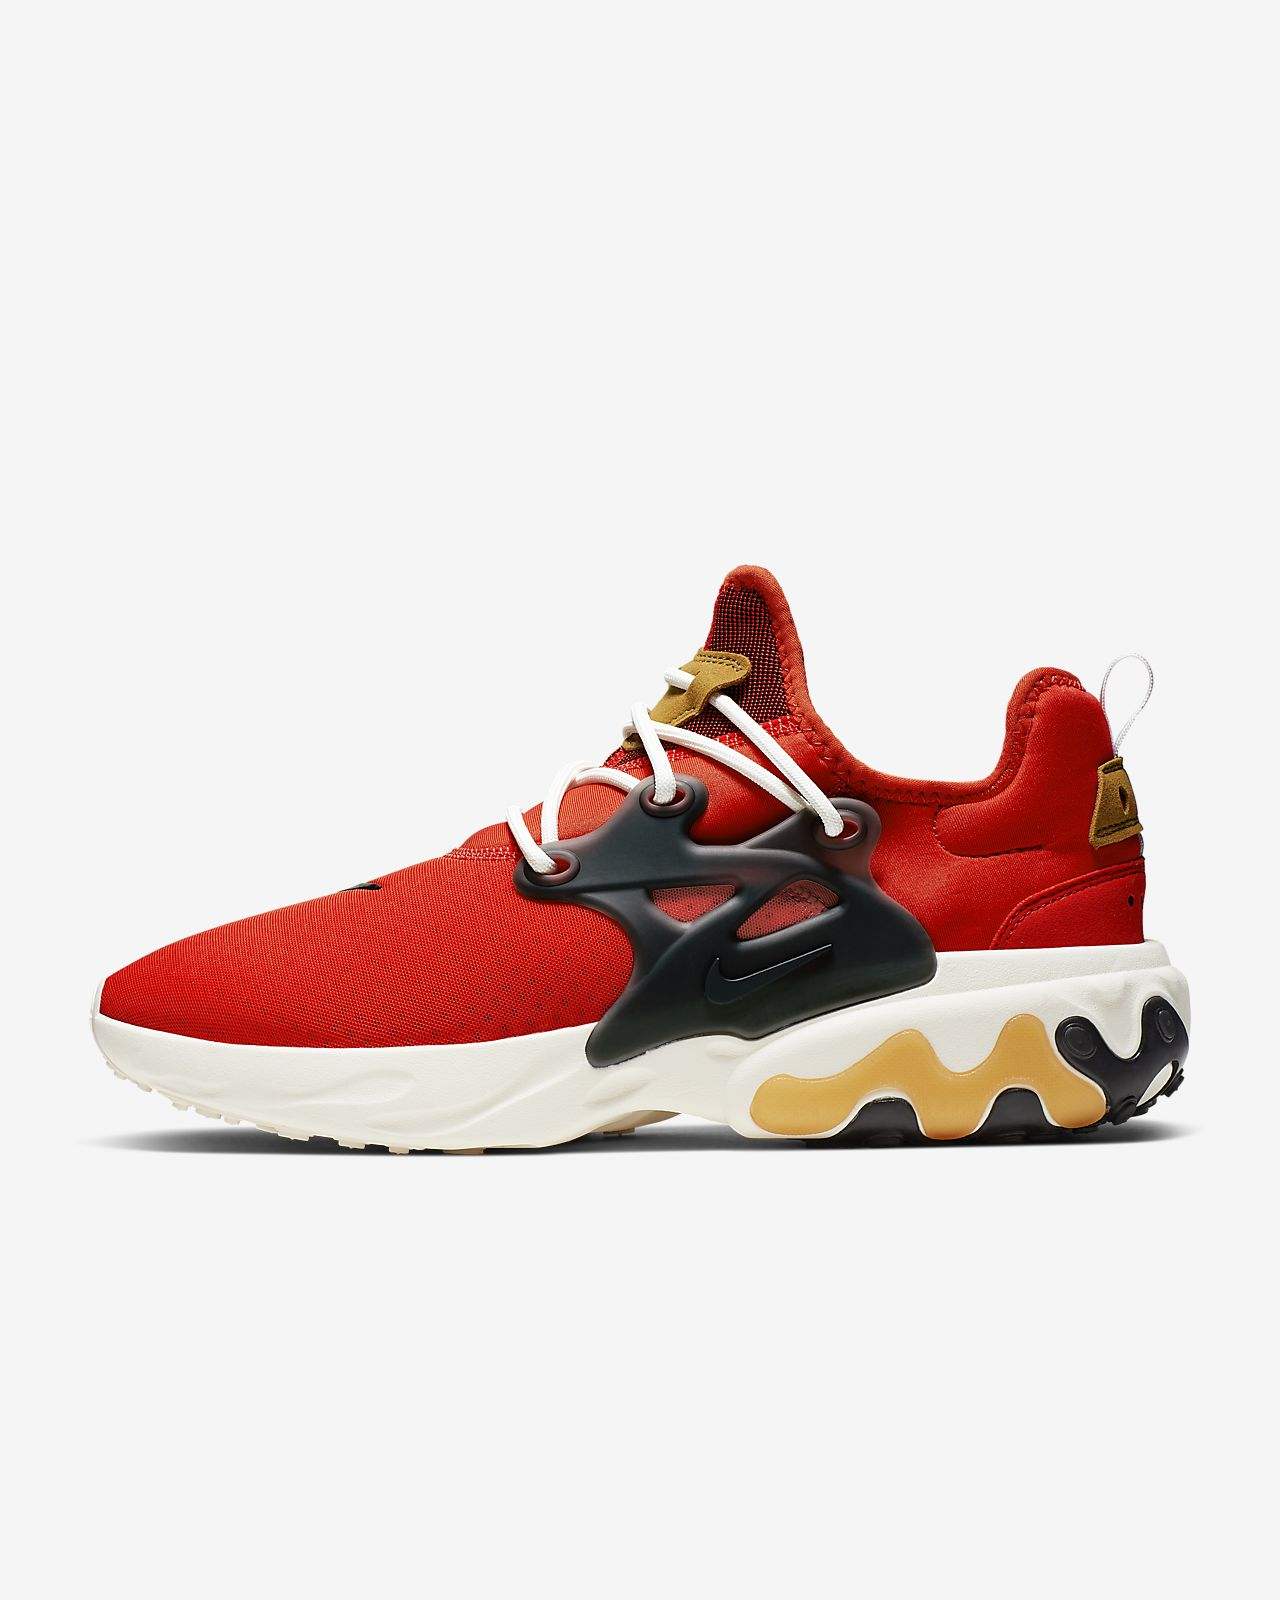 Chaussure Nike React Presto pour Homme